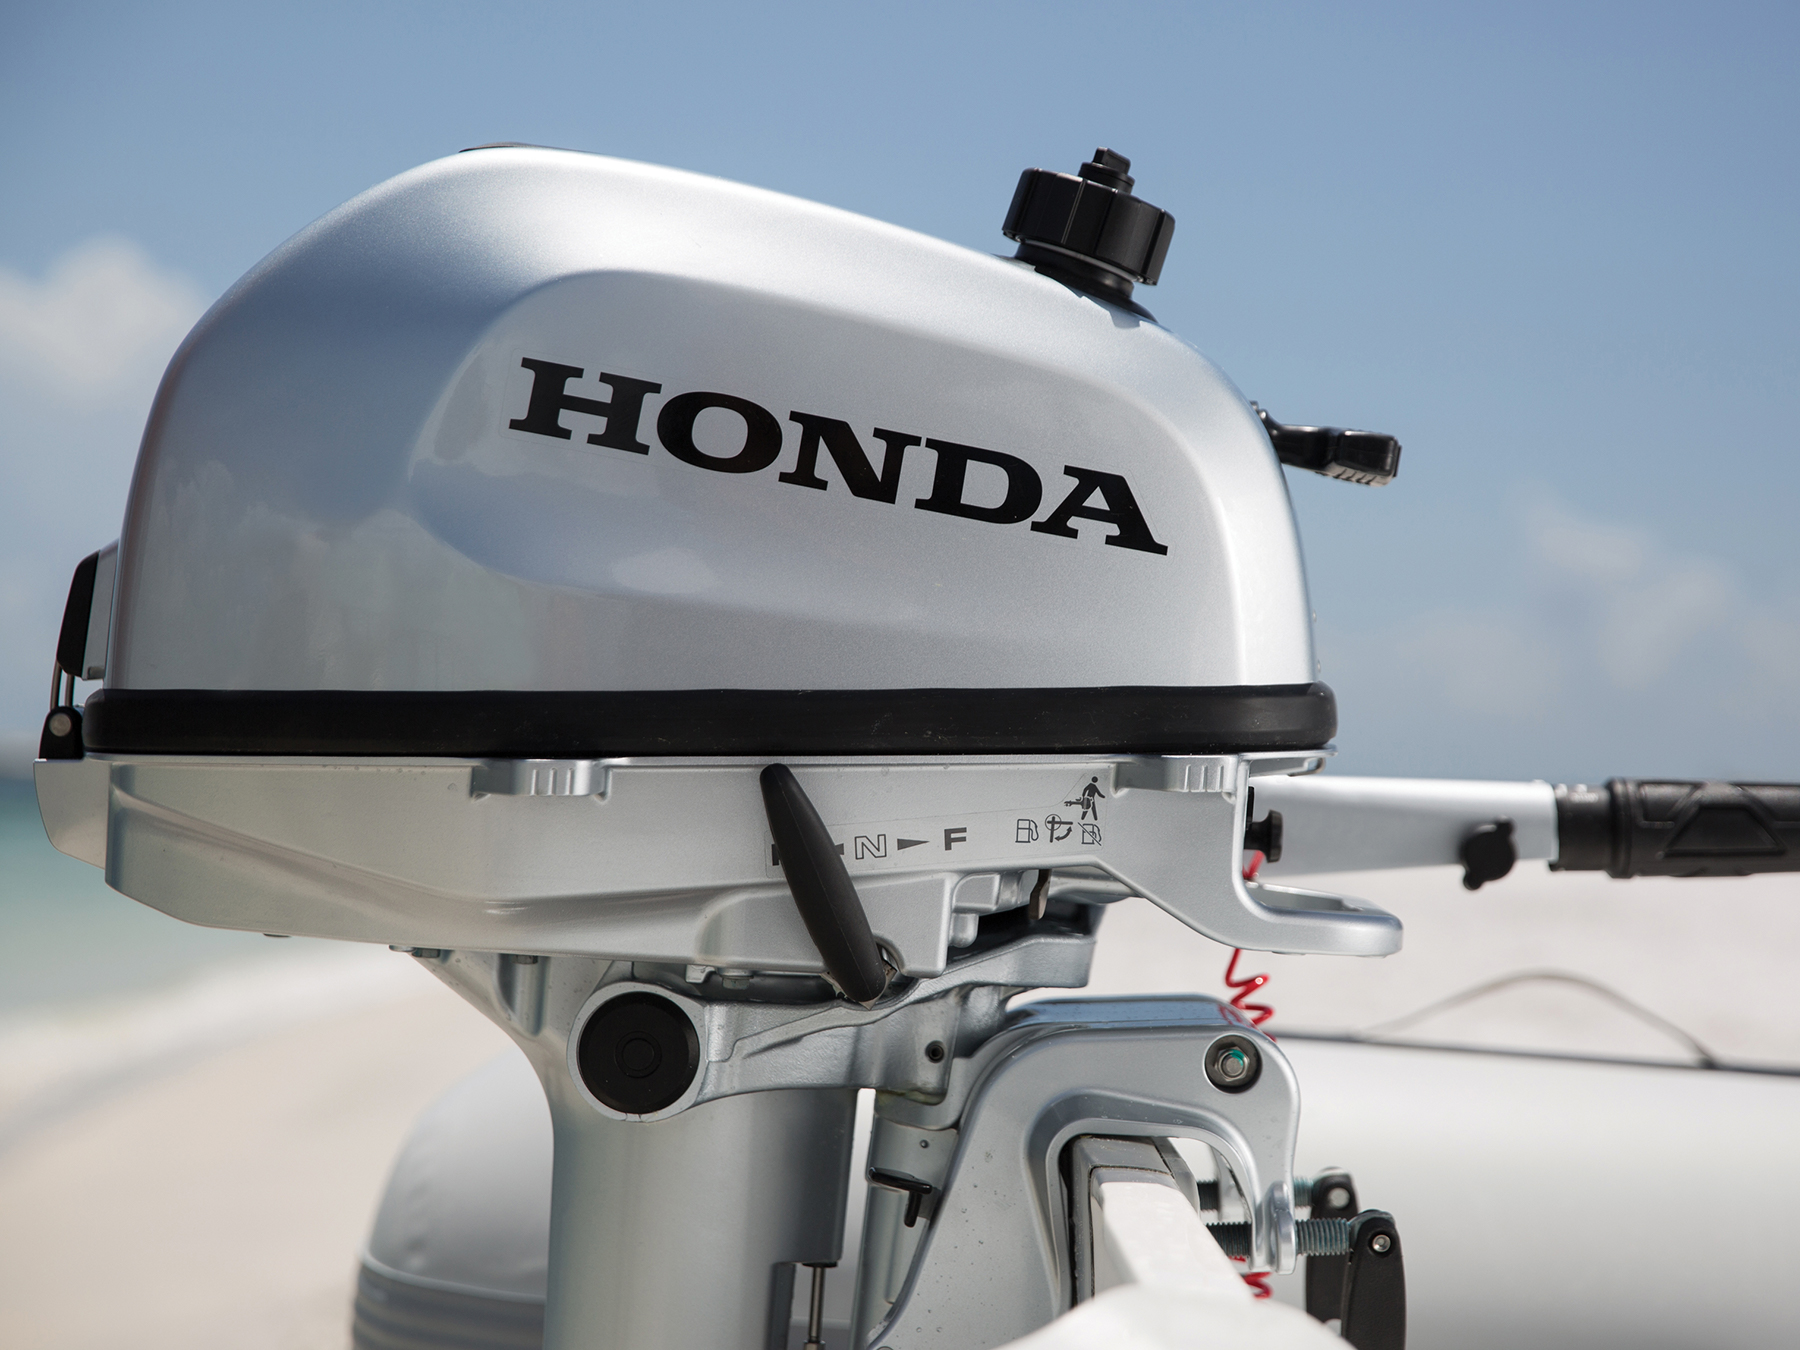 Side view of a Honda engine in the water